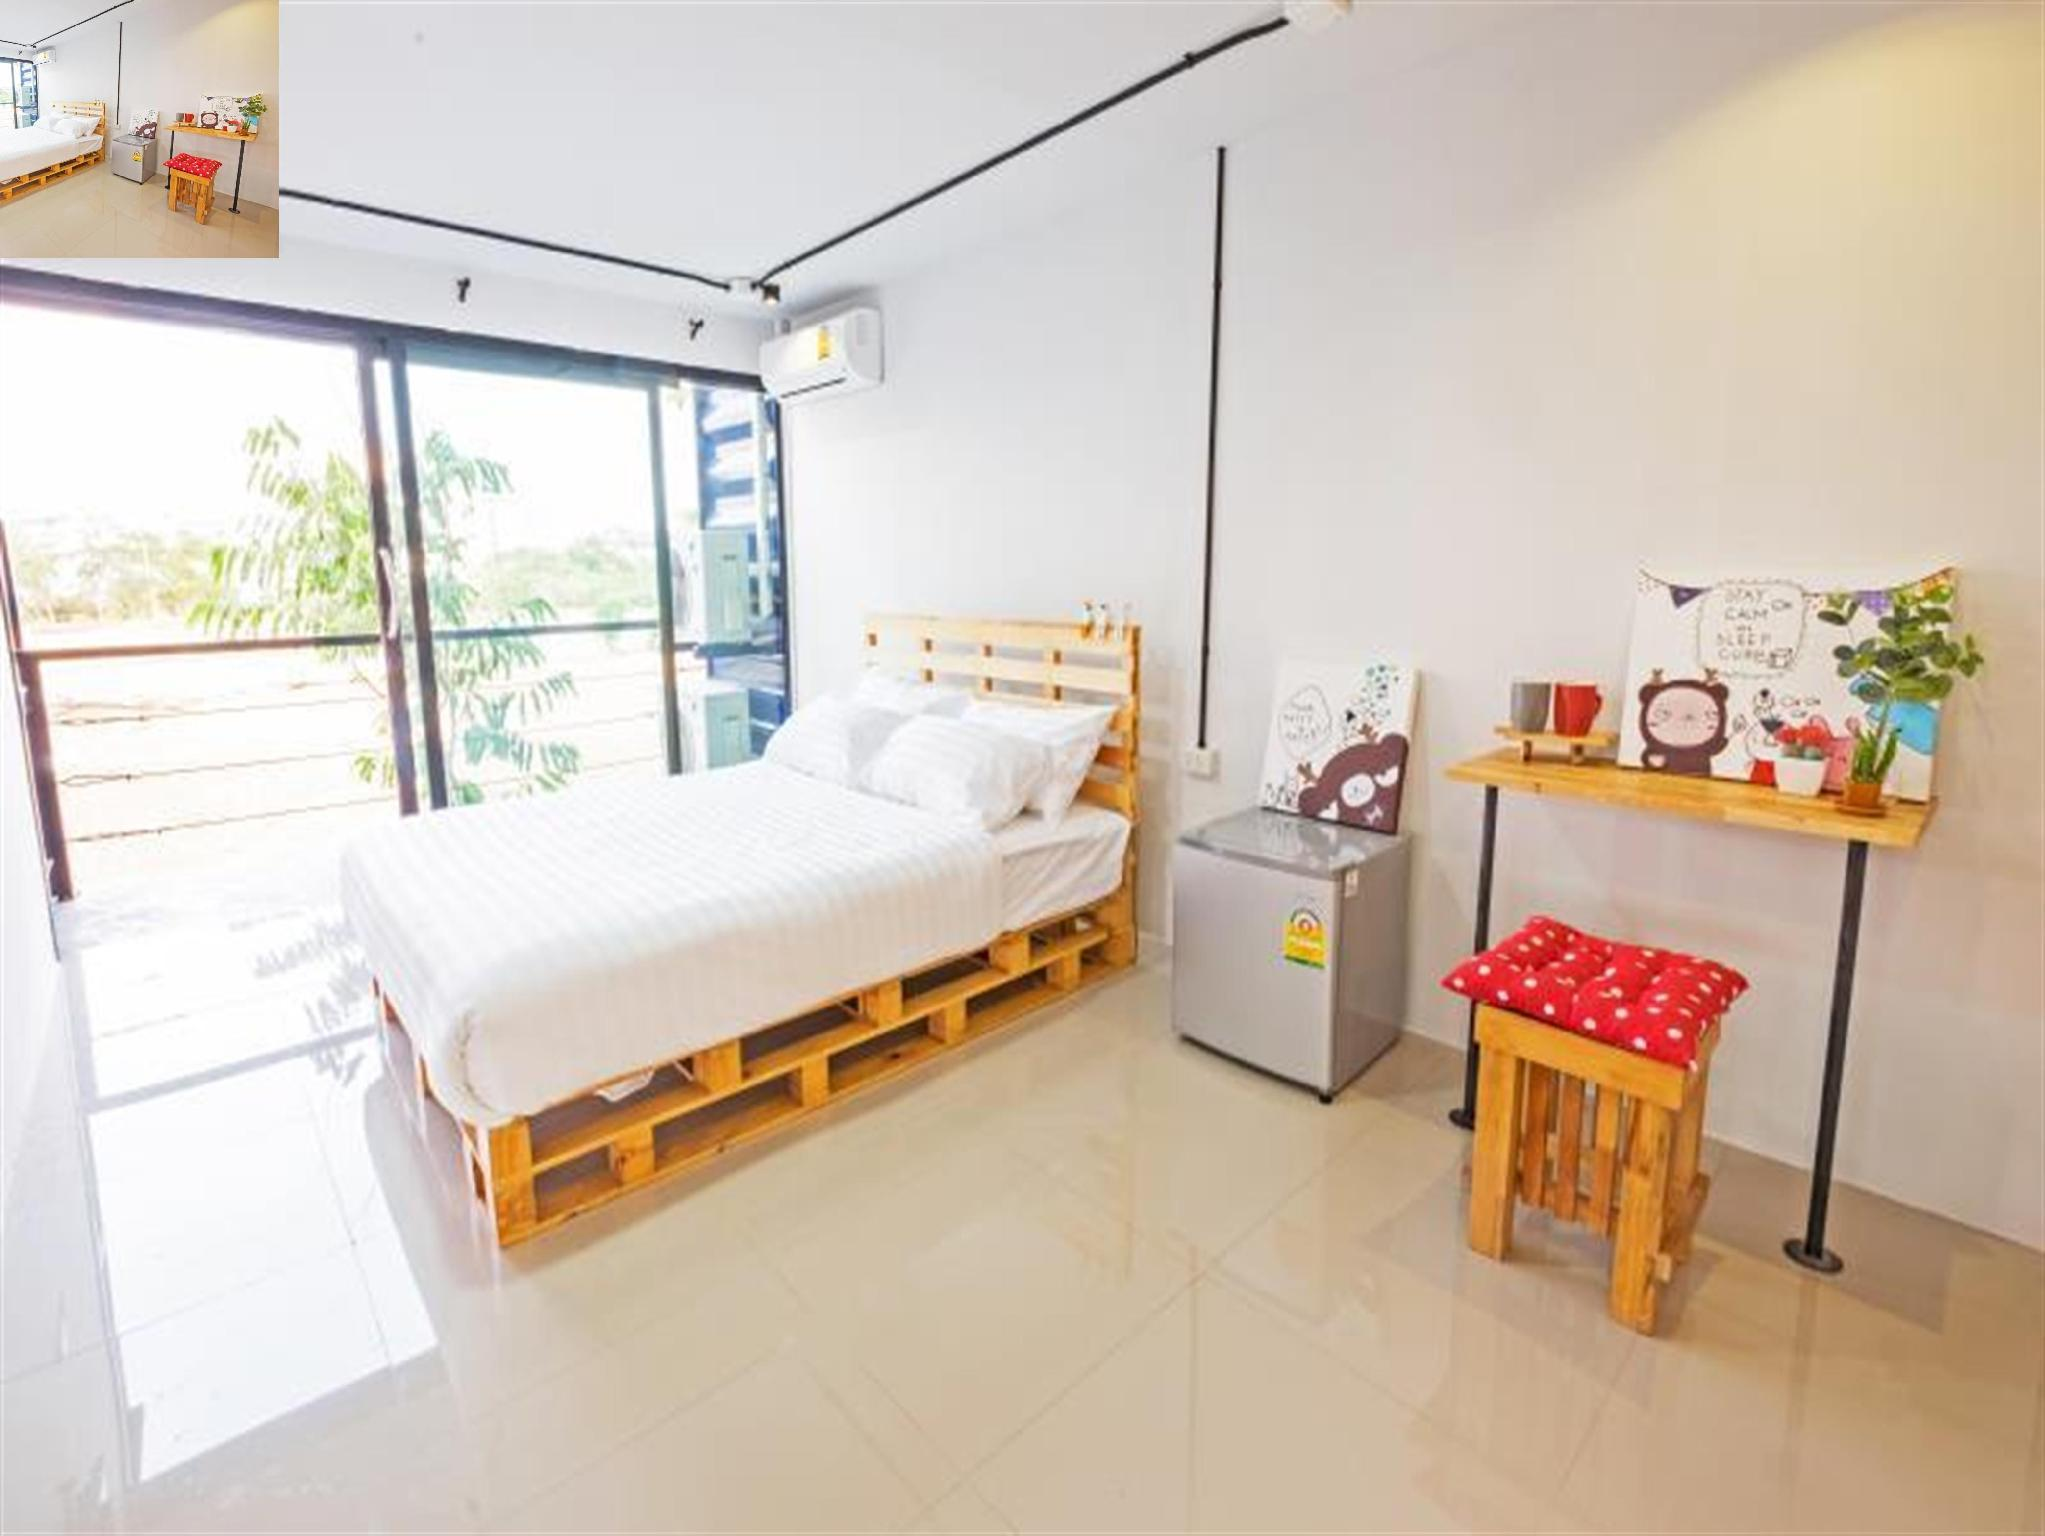 Deluxe Double Room - (Non-Smoking)